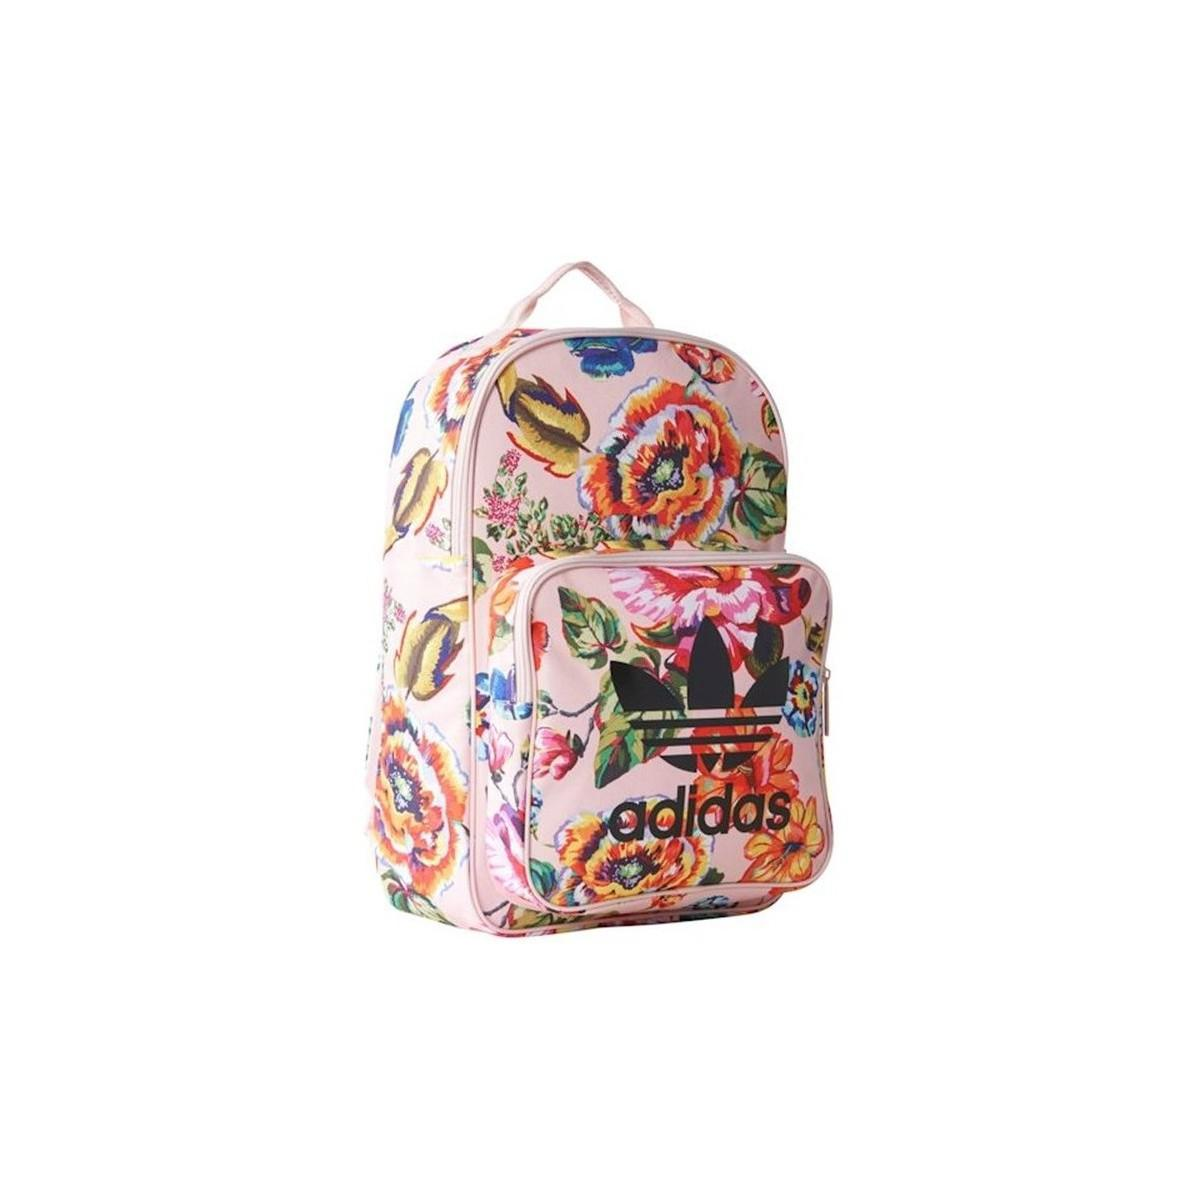 adidas Originals Floral Classic Bp Women s Backpack In Pink in Pink ... a1d4e63964